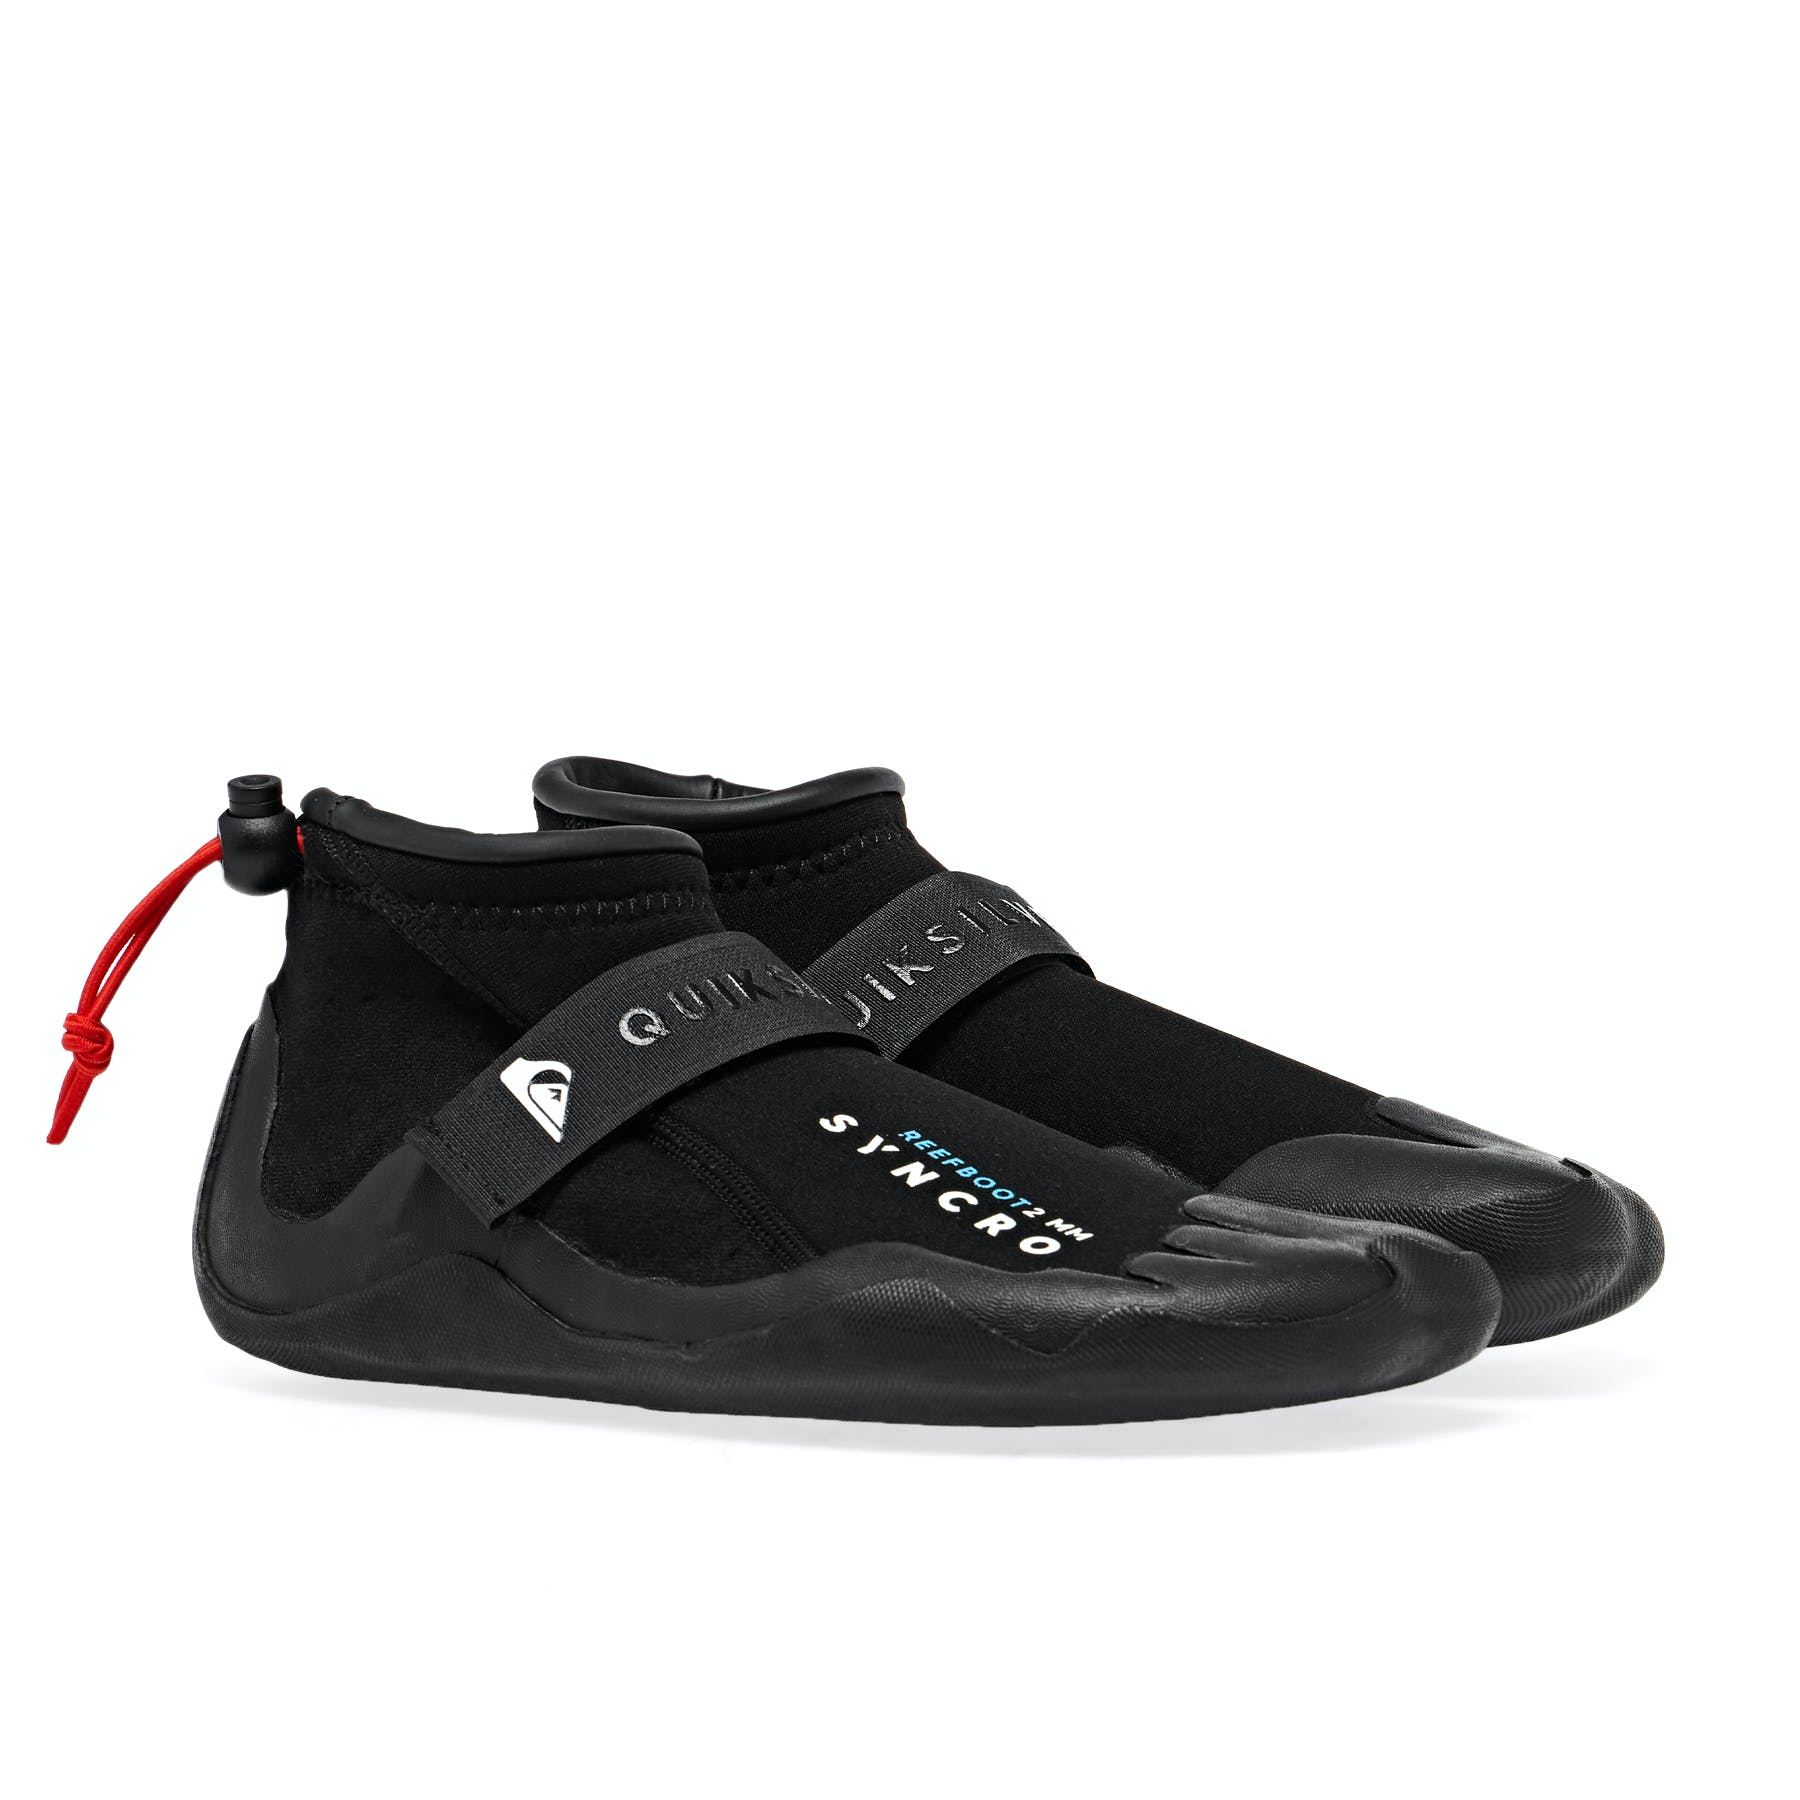 Quiksilver Syncro 2m Round Toe Mens Surf Gear Wetsuit Boots Black All Sizes